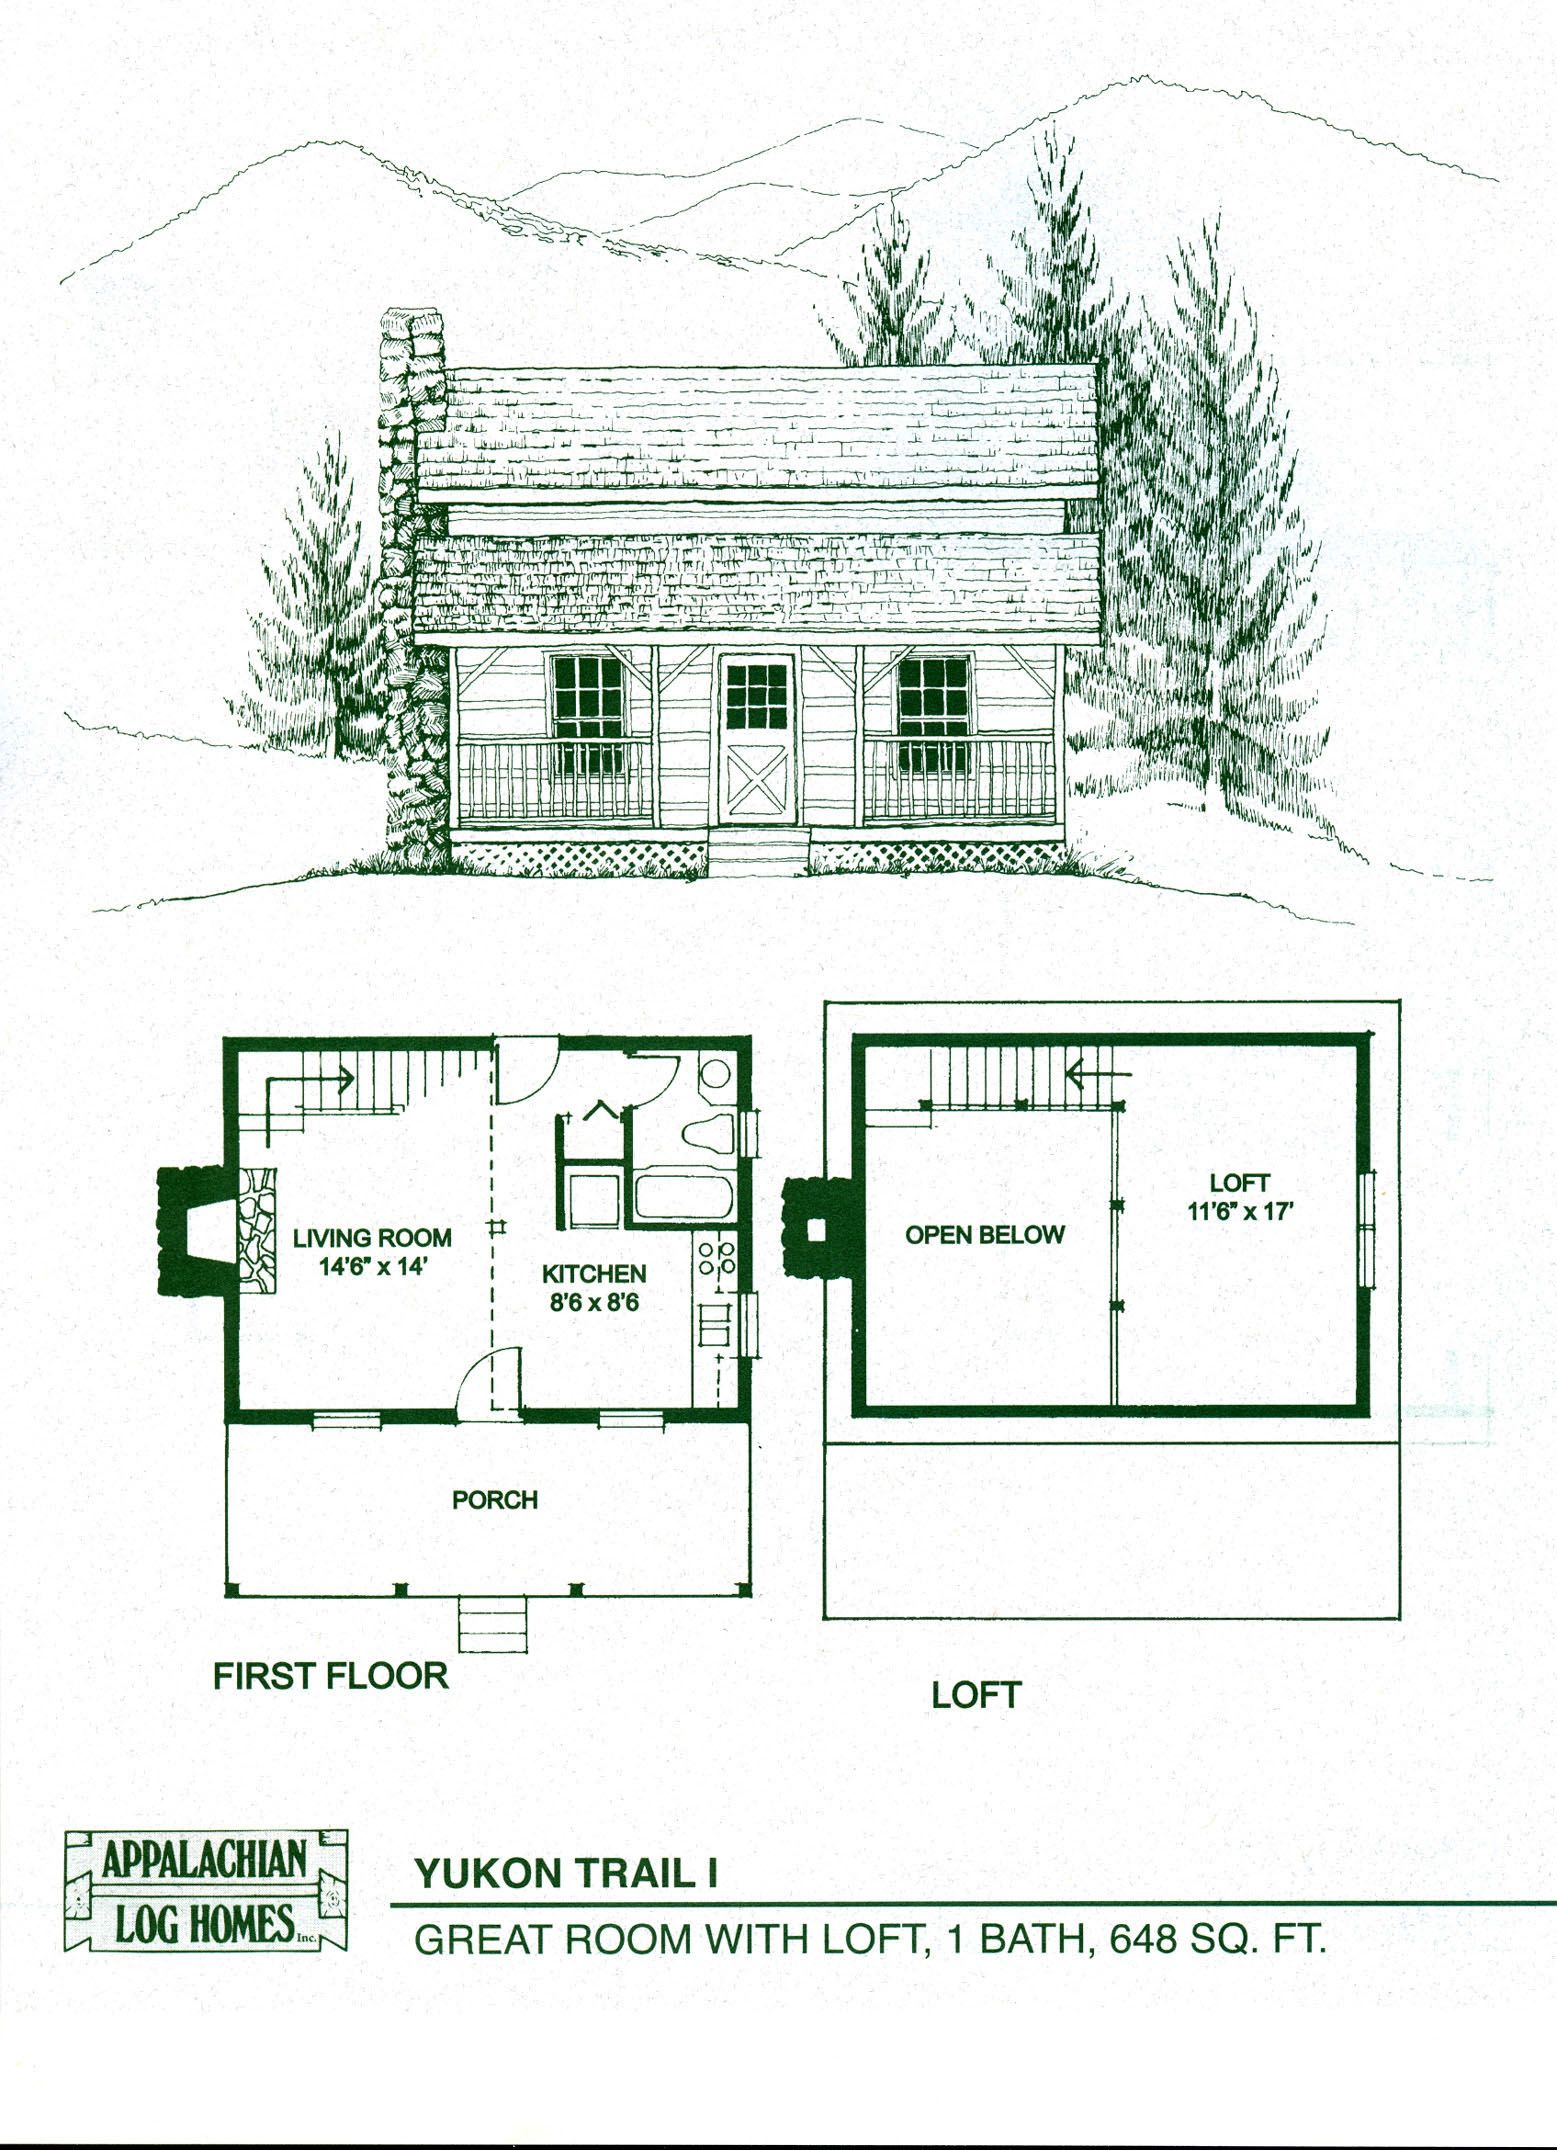 log home floor plans log cabin kits appalachian log homes - Small House Plans With Loft